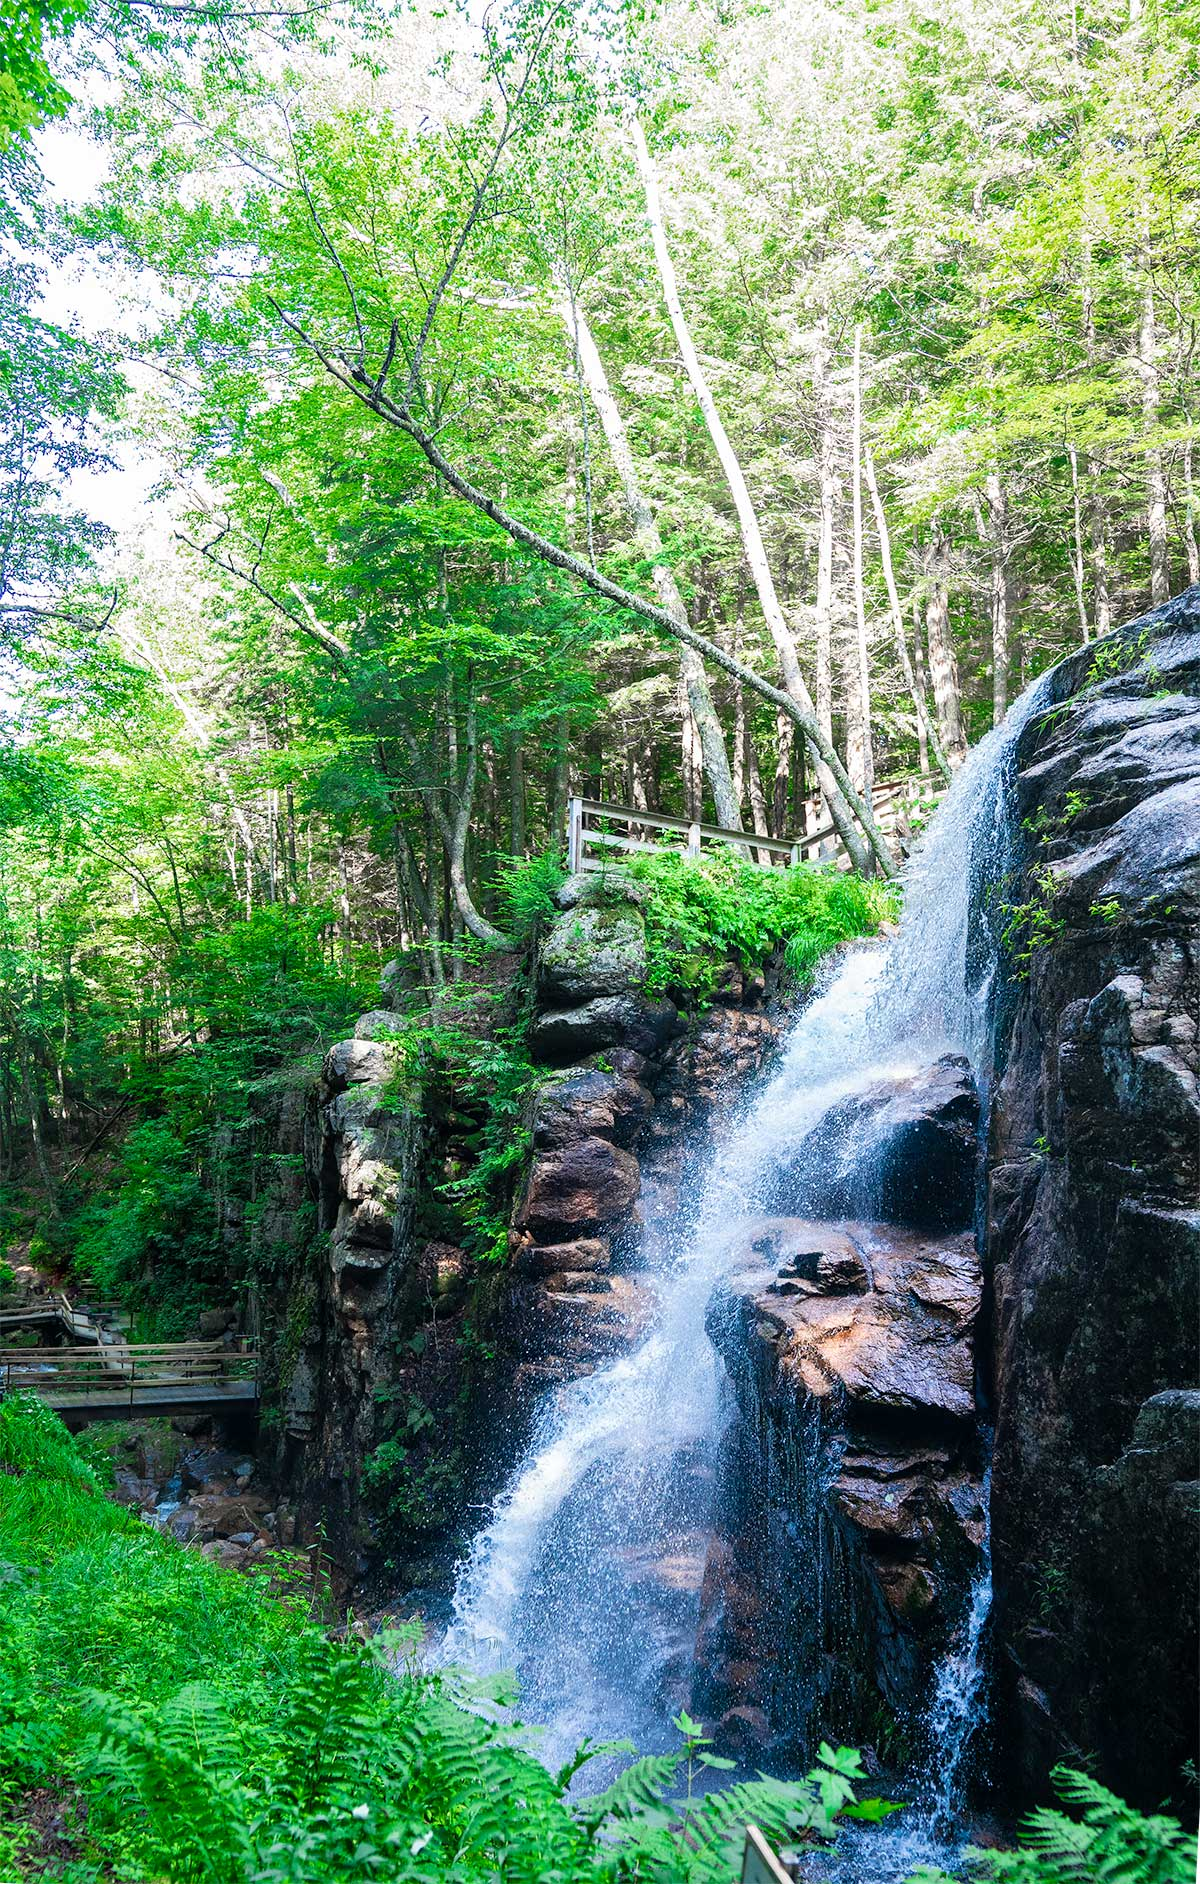 The-Falls-at-Flume-Gorge-White-Mountains-Franconia-Notch